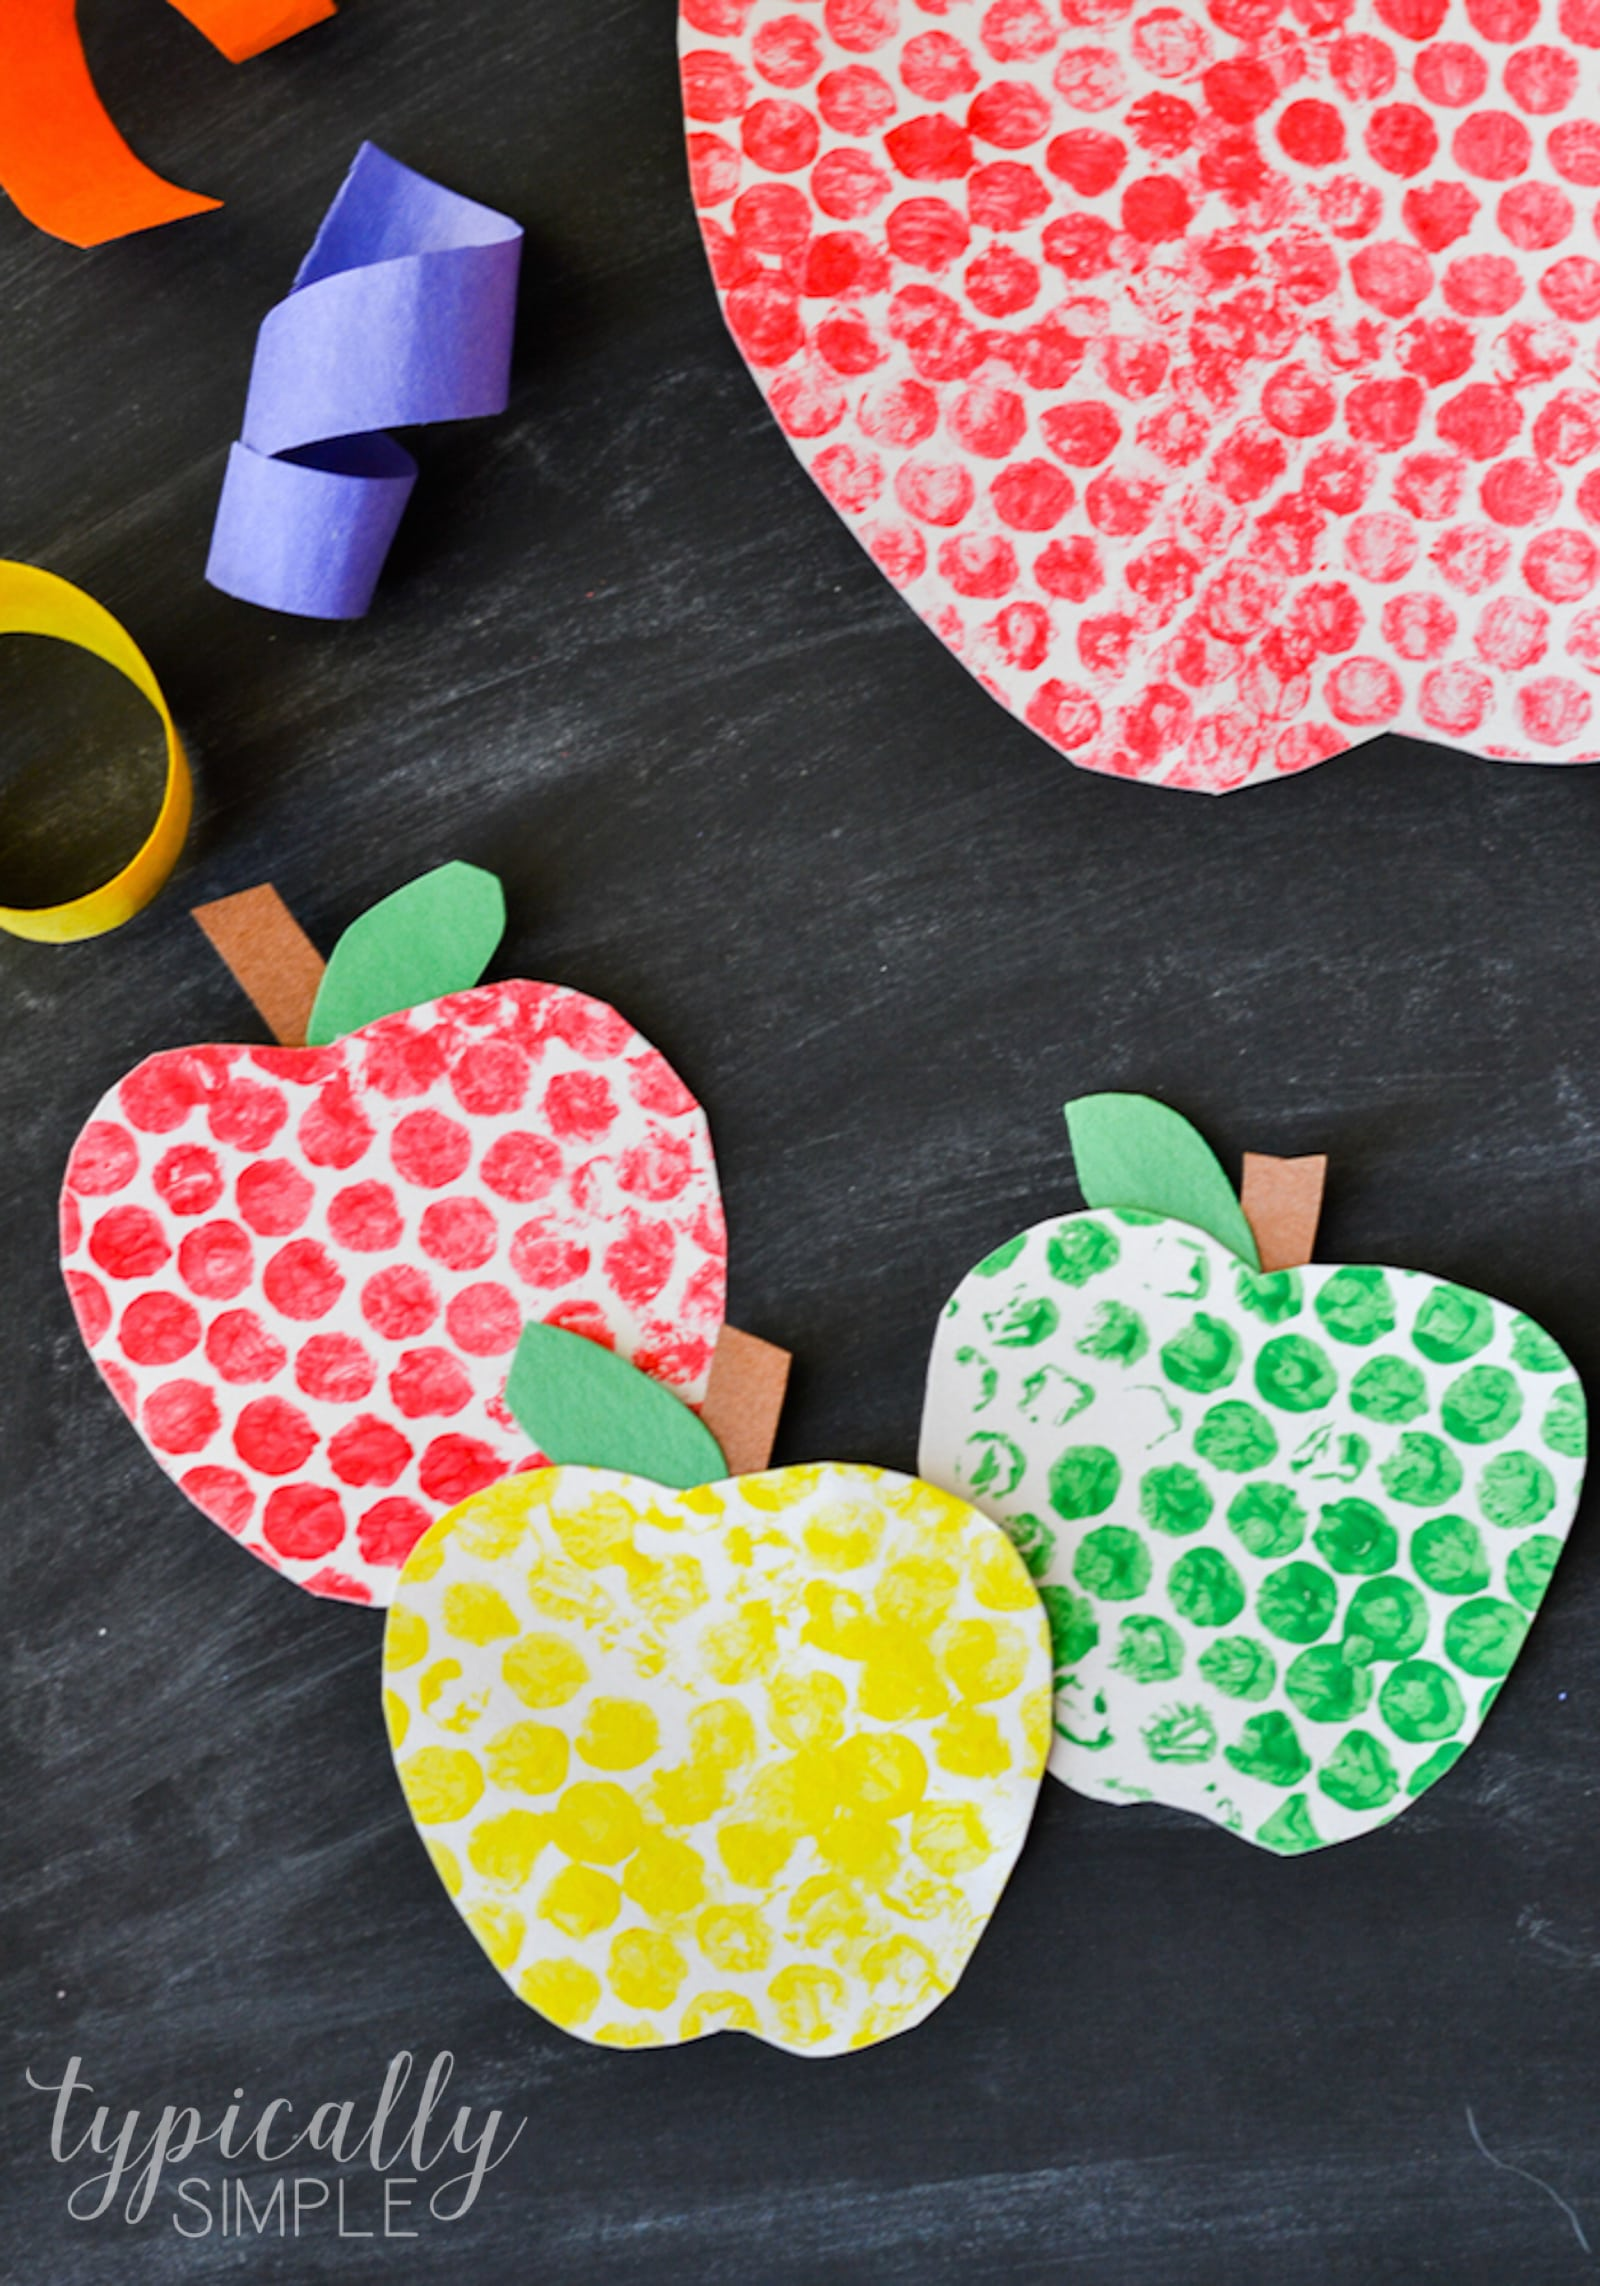 DIY bubble wrap painted apples as cards or decor